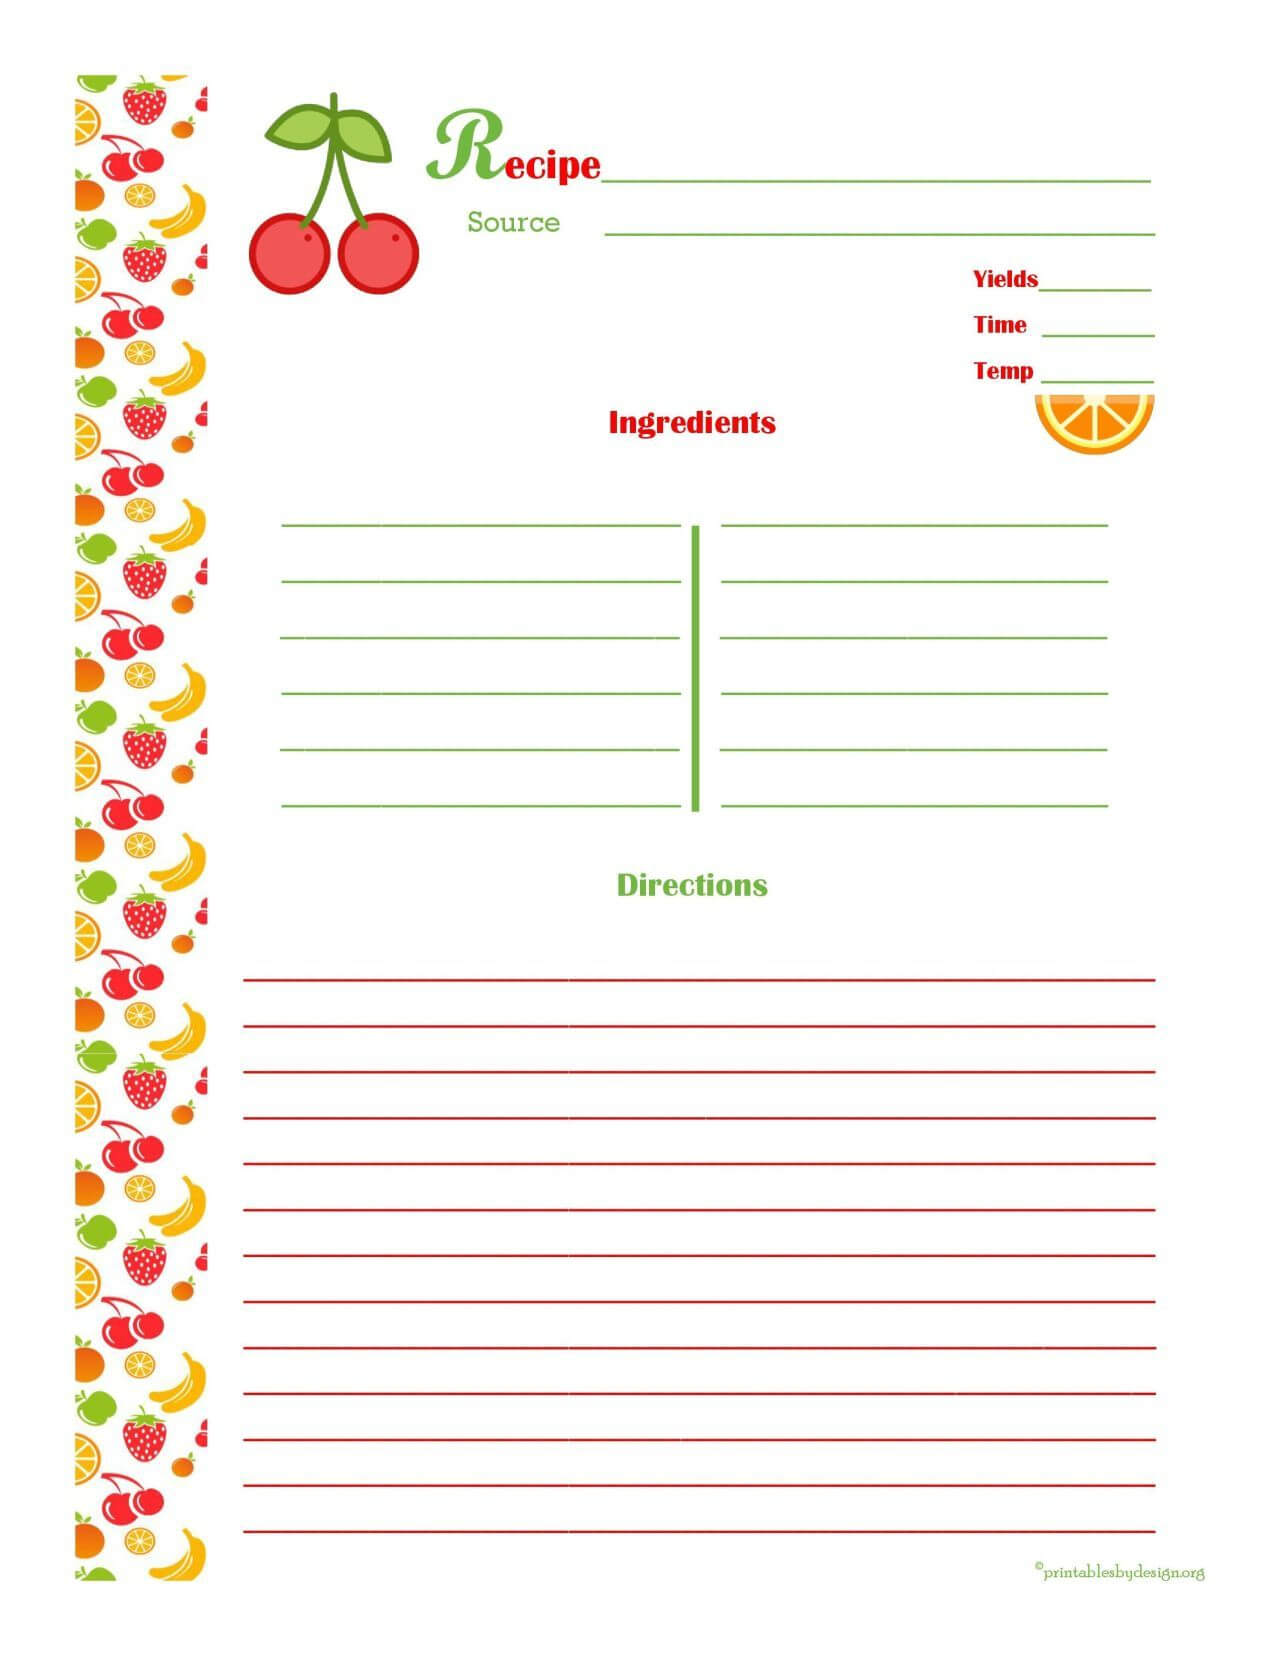 Free Editable Recipe Card Templates For Microsoft Word Within Free Recipe Card Templates For Microsoft Word